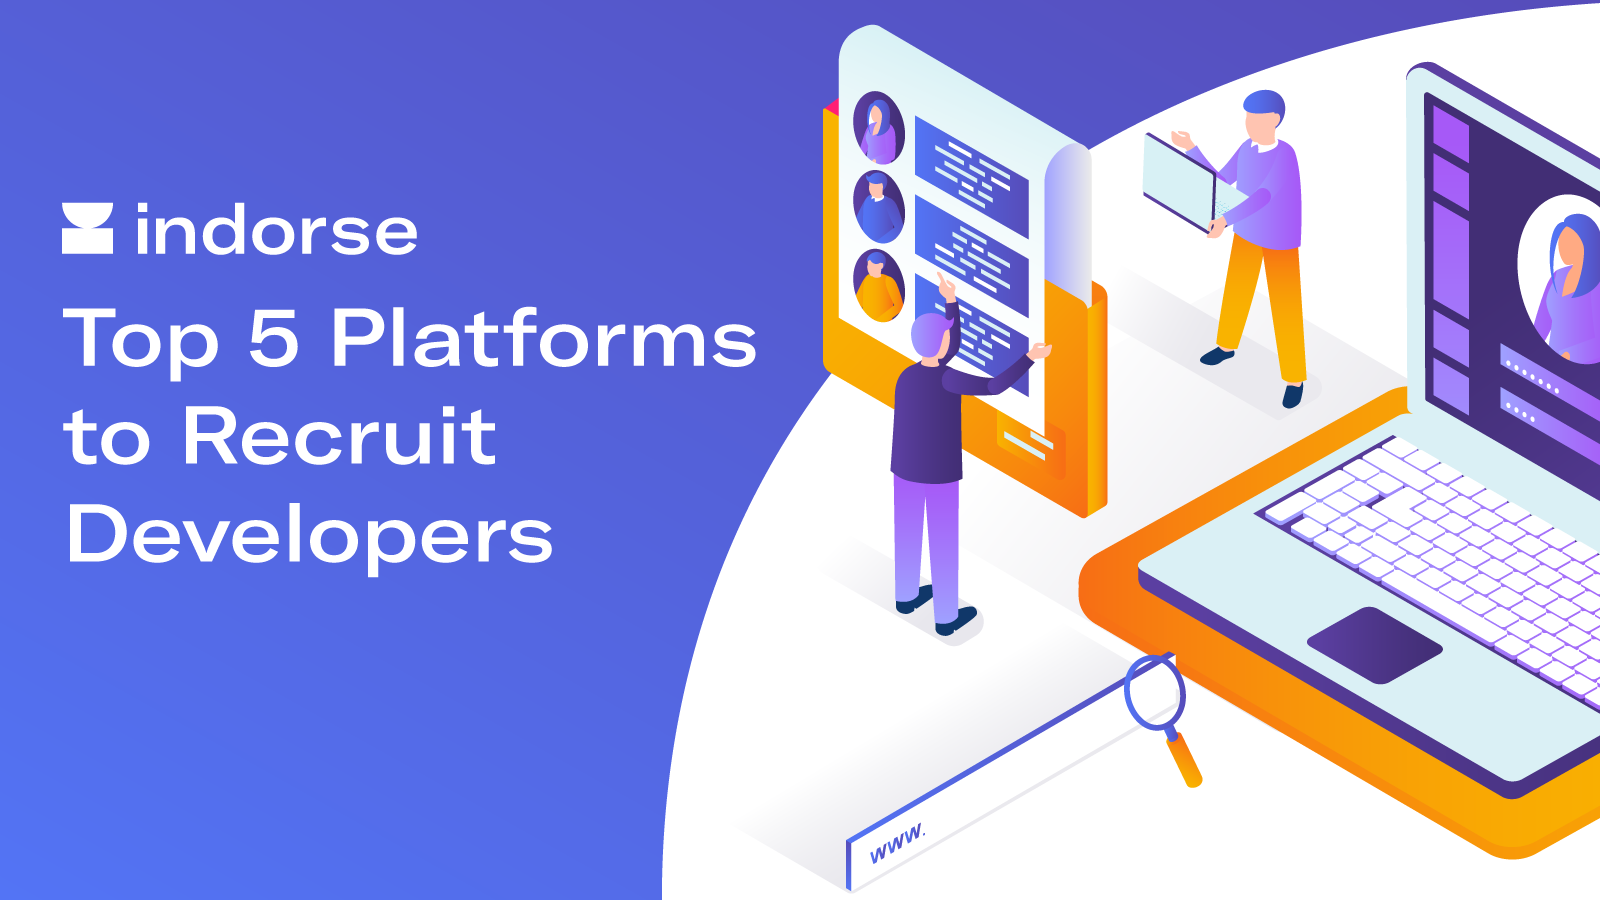 Top 5 Platforms to Recruit Developers - Indorse